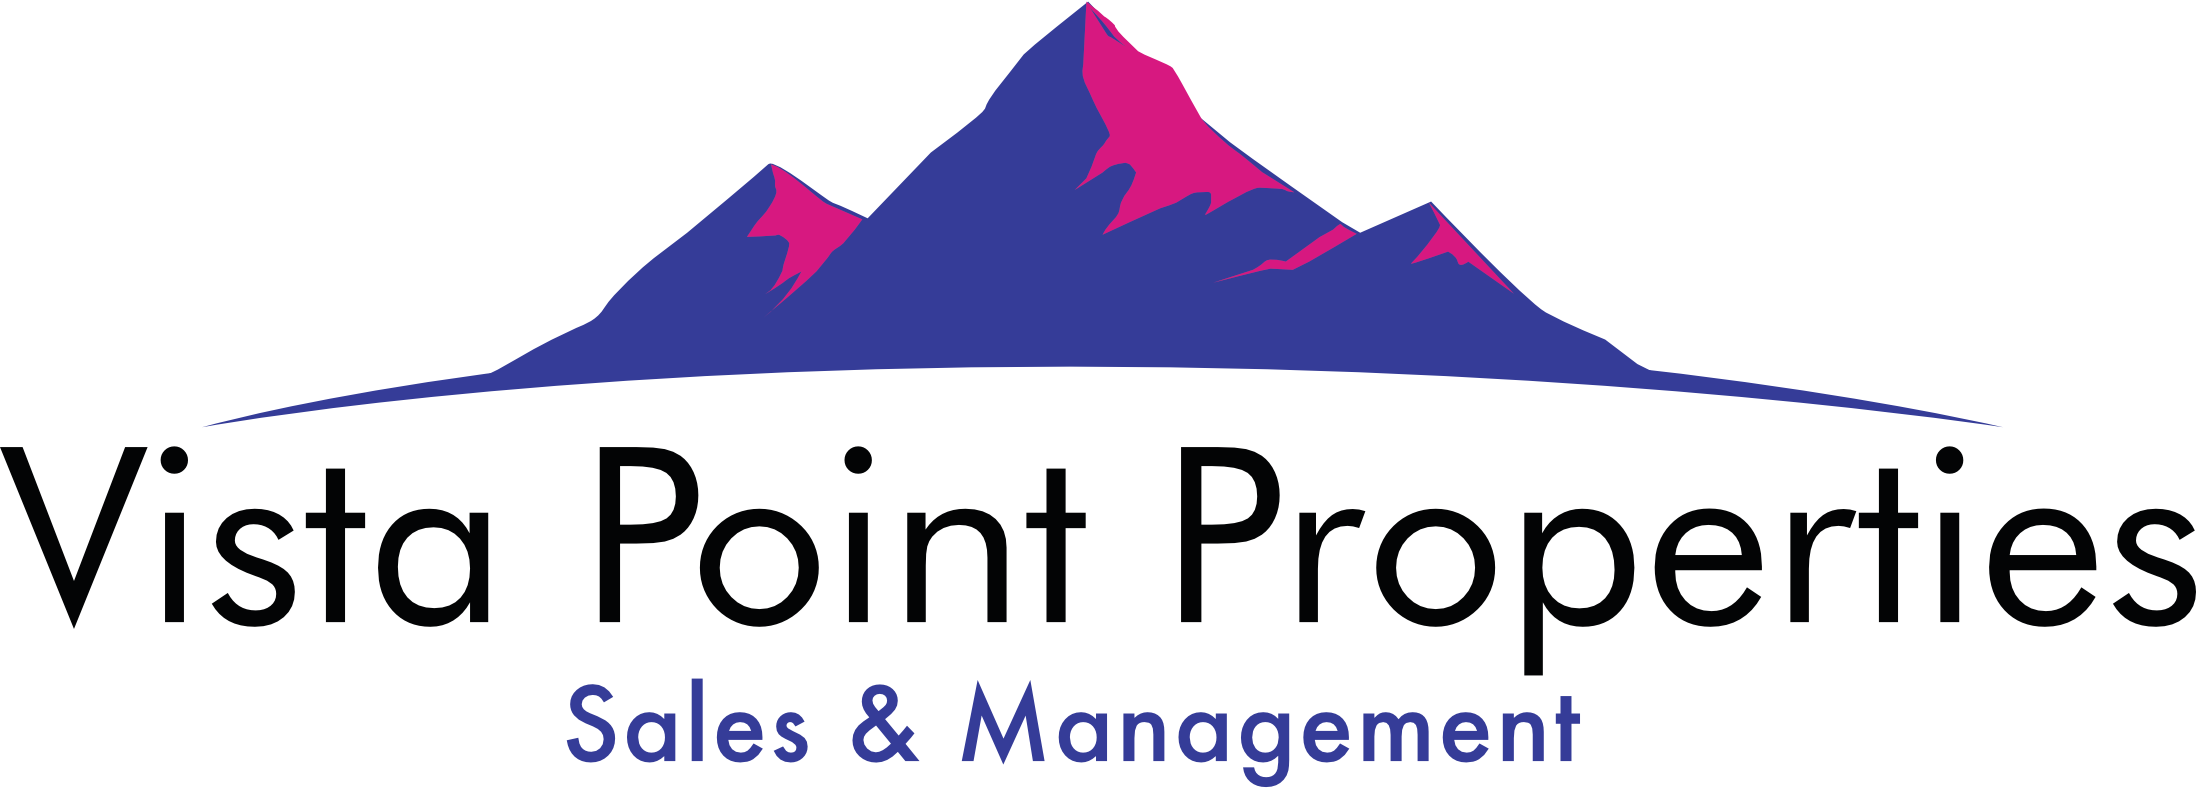 Vista Point Properties |   Owner/Seller Resources